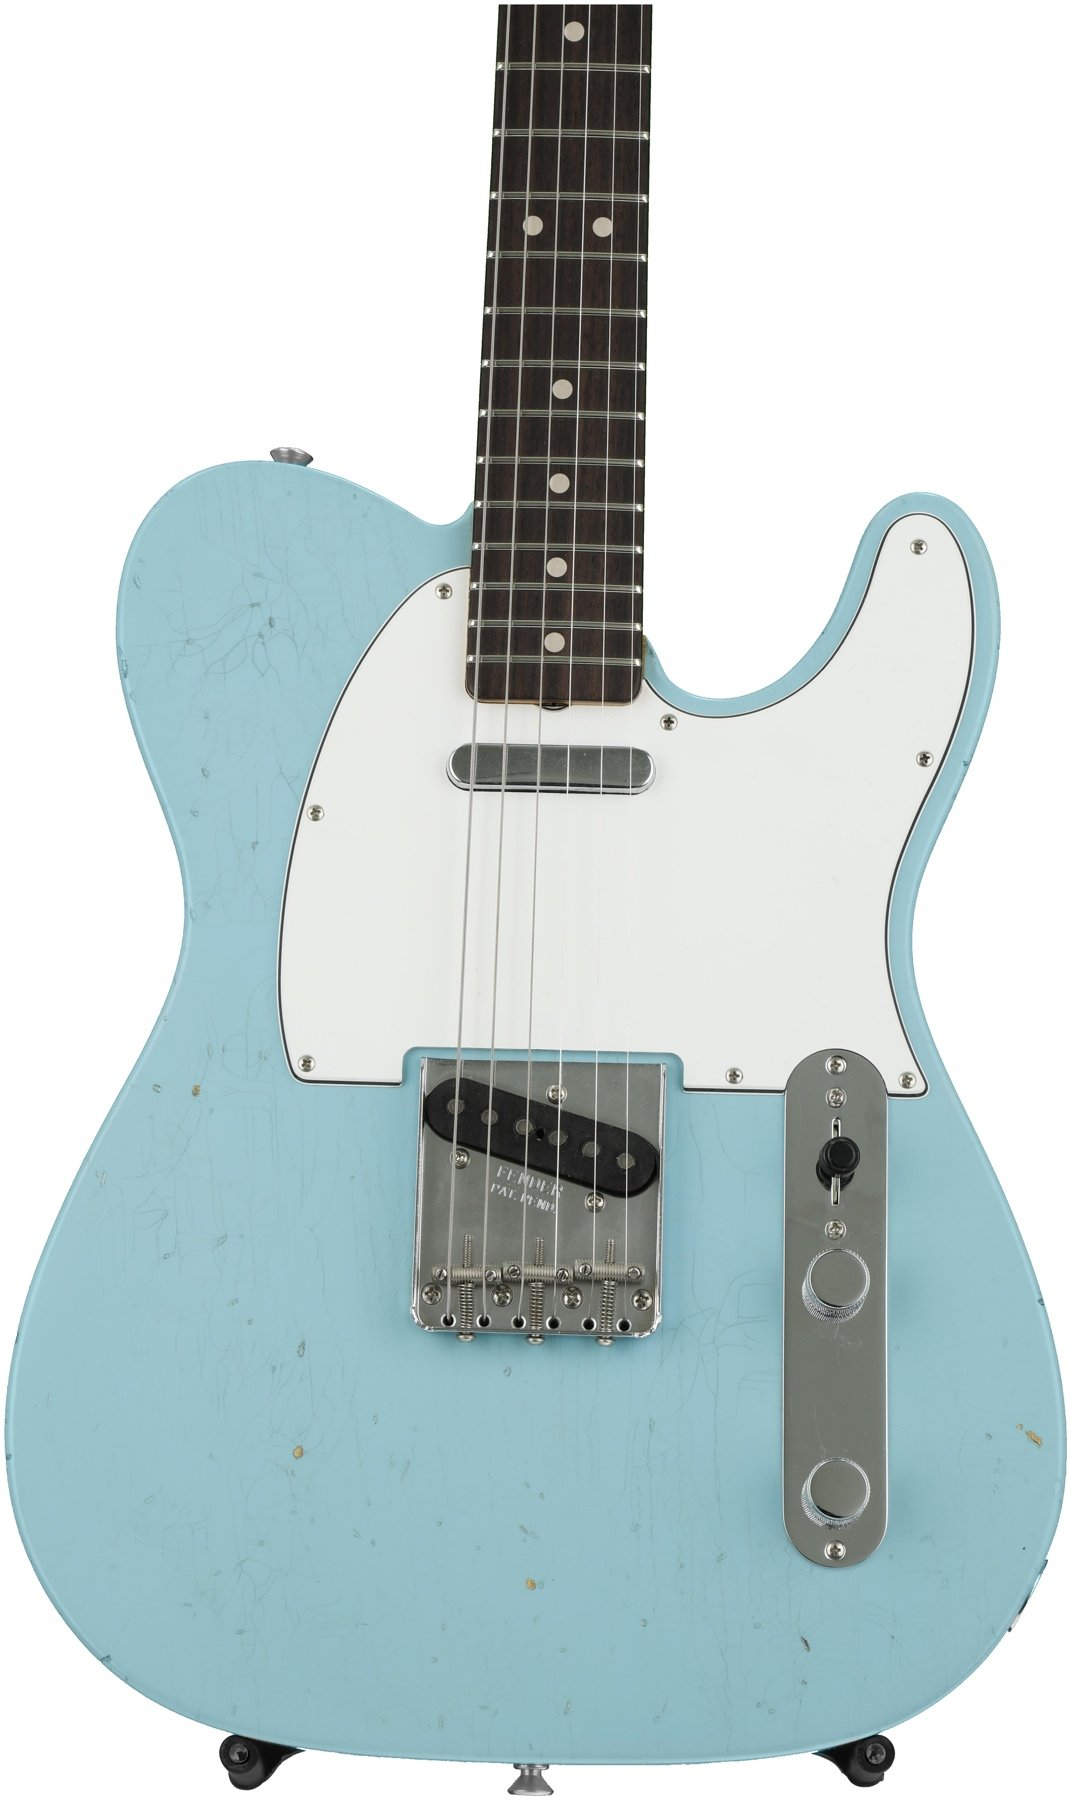 Fender Custom Shop 1963 Journeyman Closet Classic Telecaster Sale On Texas Special Pickups Wiring Daphne Blue Image 1